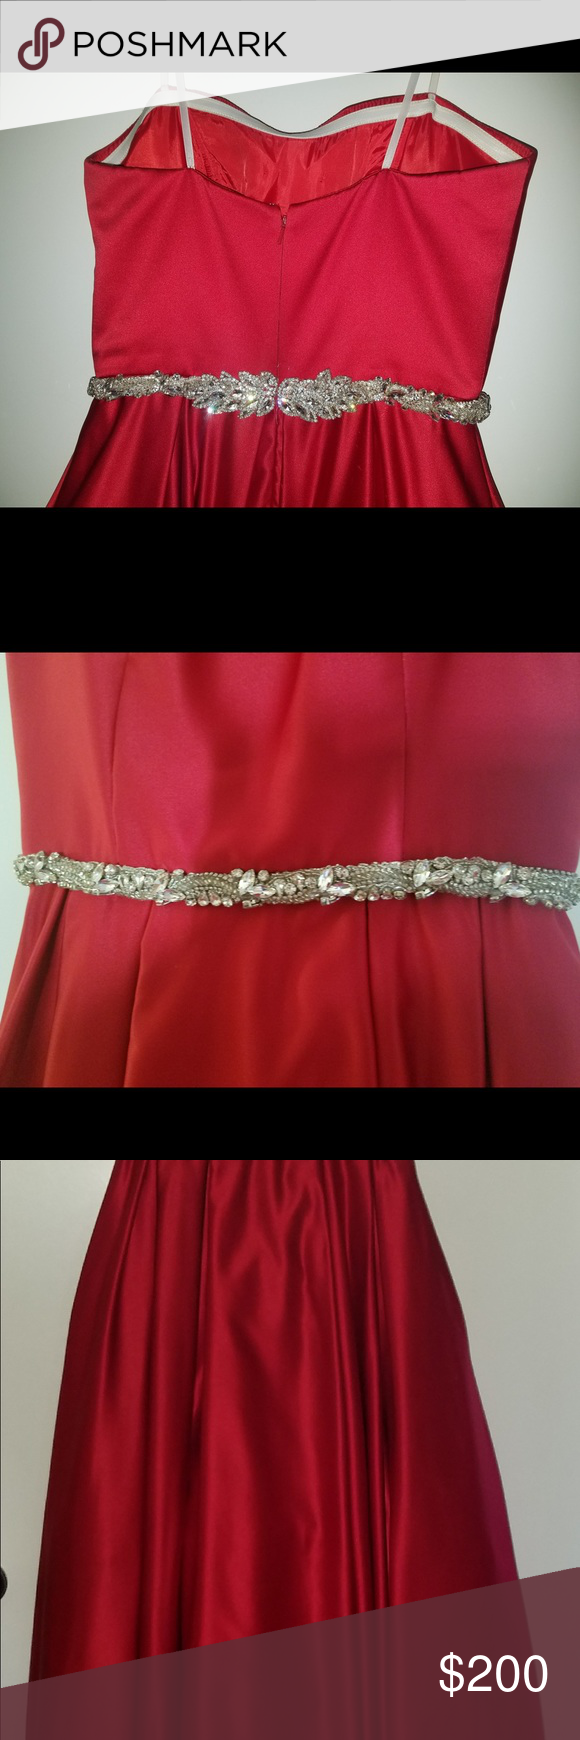 a6205847082 Prom or red carpet dress with Swarovski sash Betsy Adam red dress size 8  with handmade Swarovski sash belt. Worn one time only. Excellent condition.